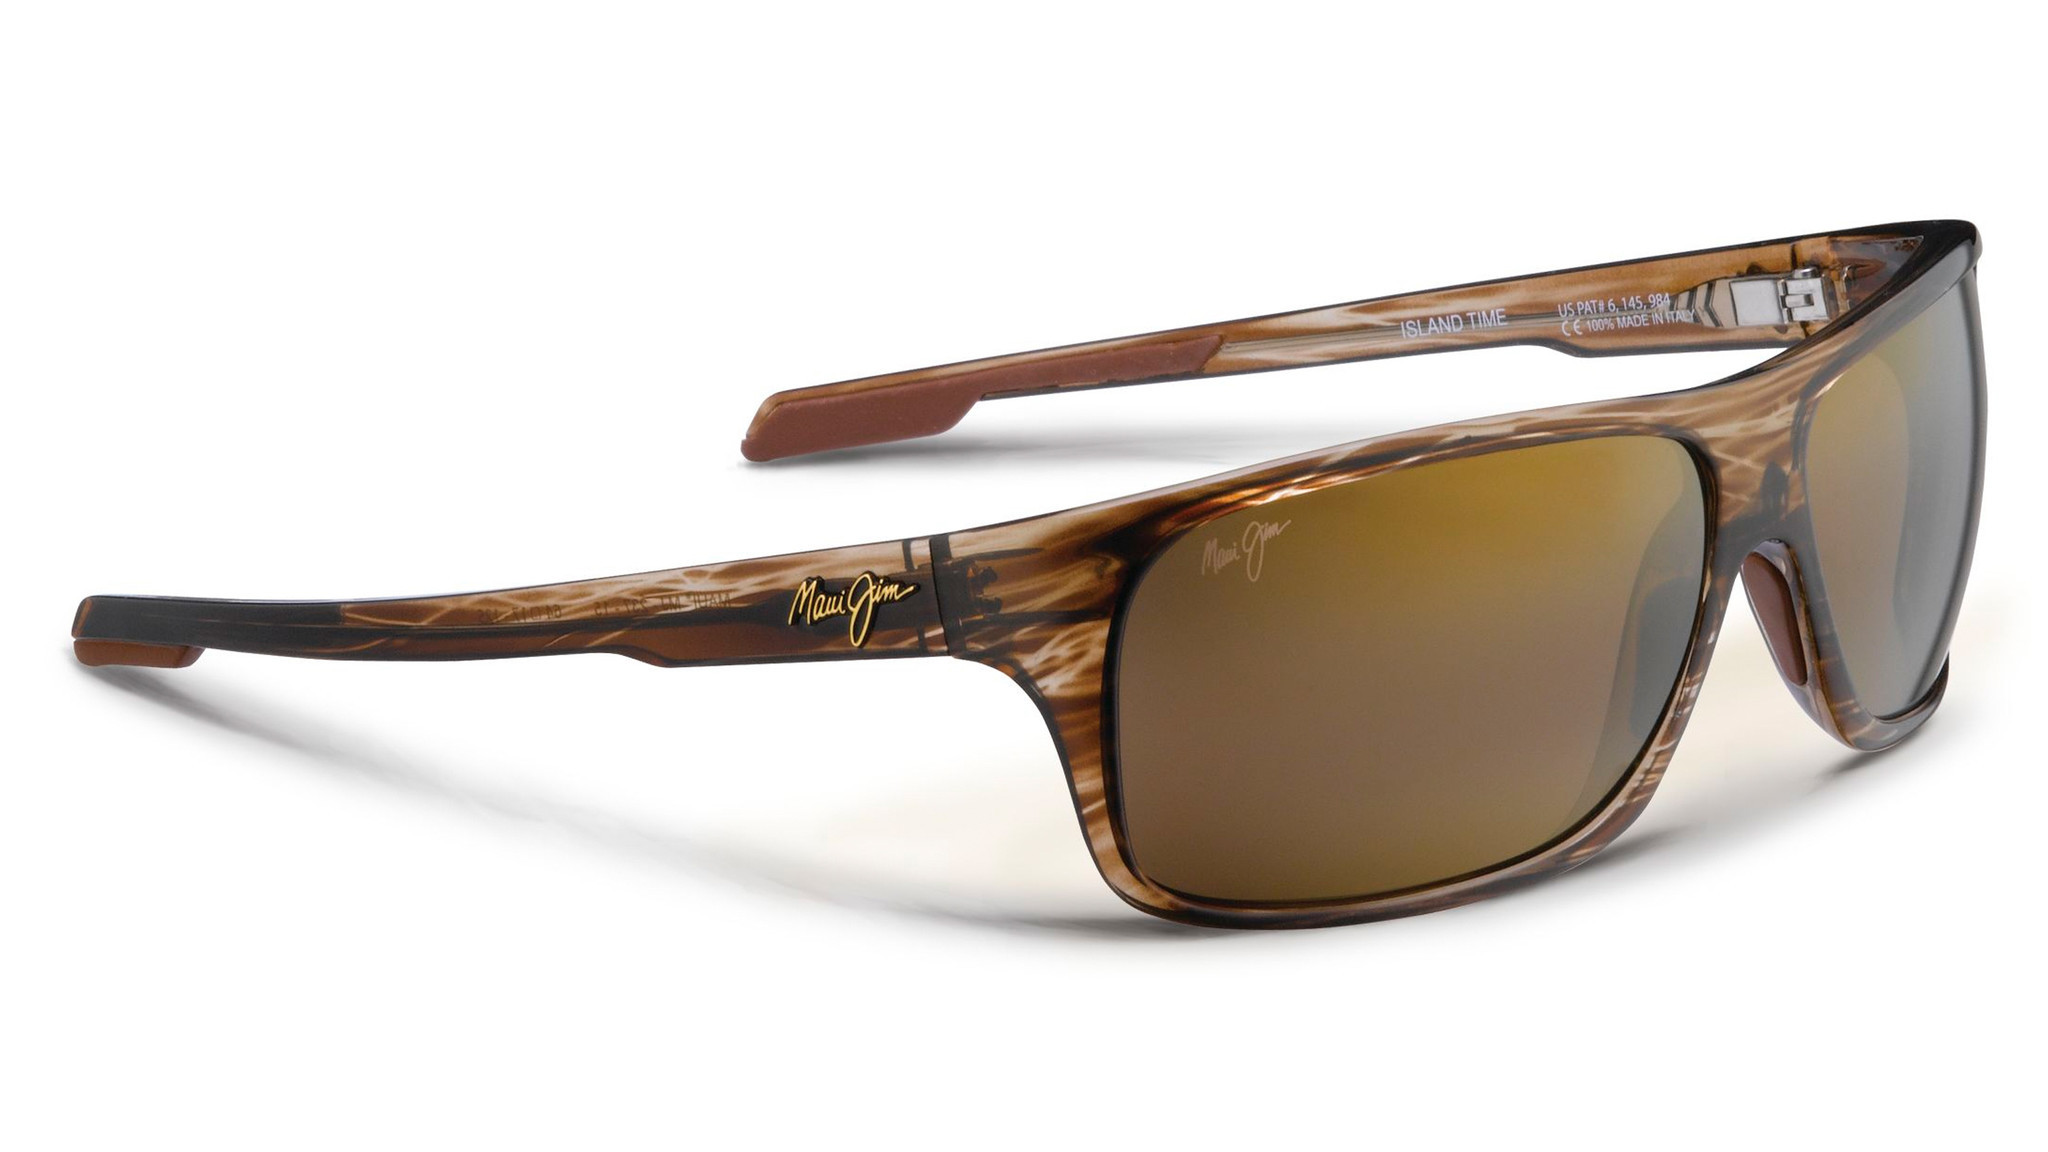 Maui Jim Haleakala, Canoes and other styles (about $229 and up, mauijim.com)